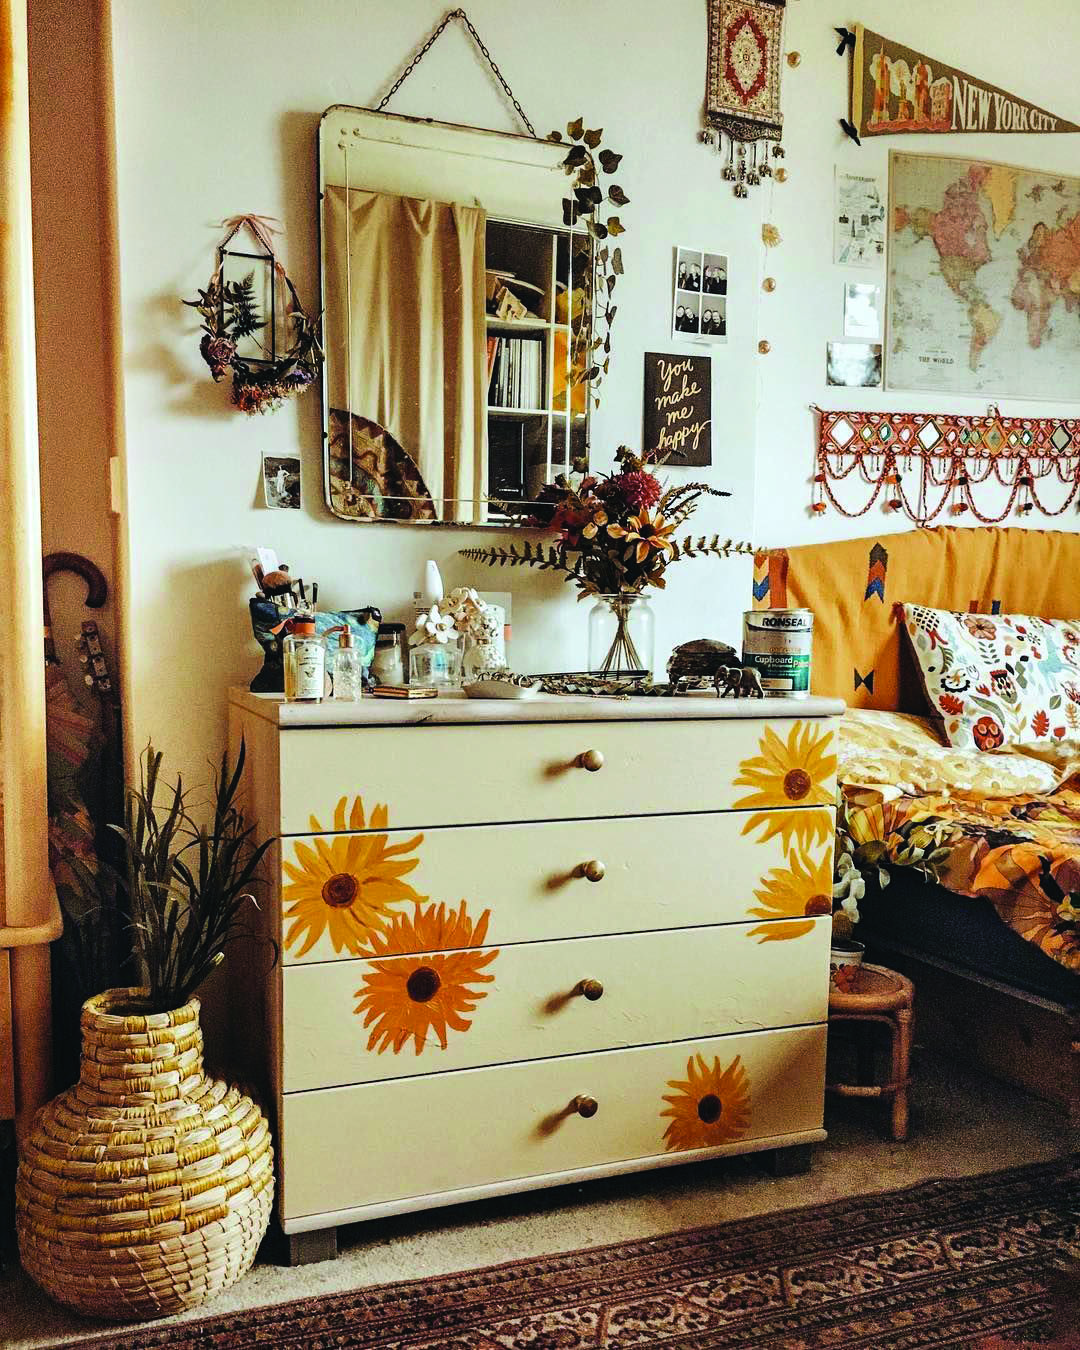 Adolescent Bedroom Ideas That Are Actually Enjoyable and Cool images